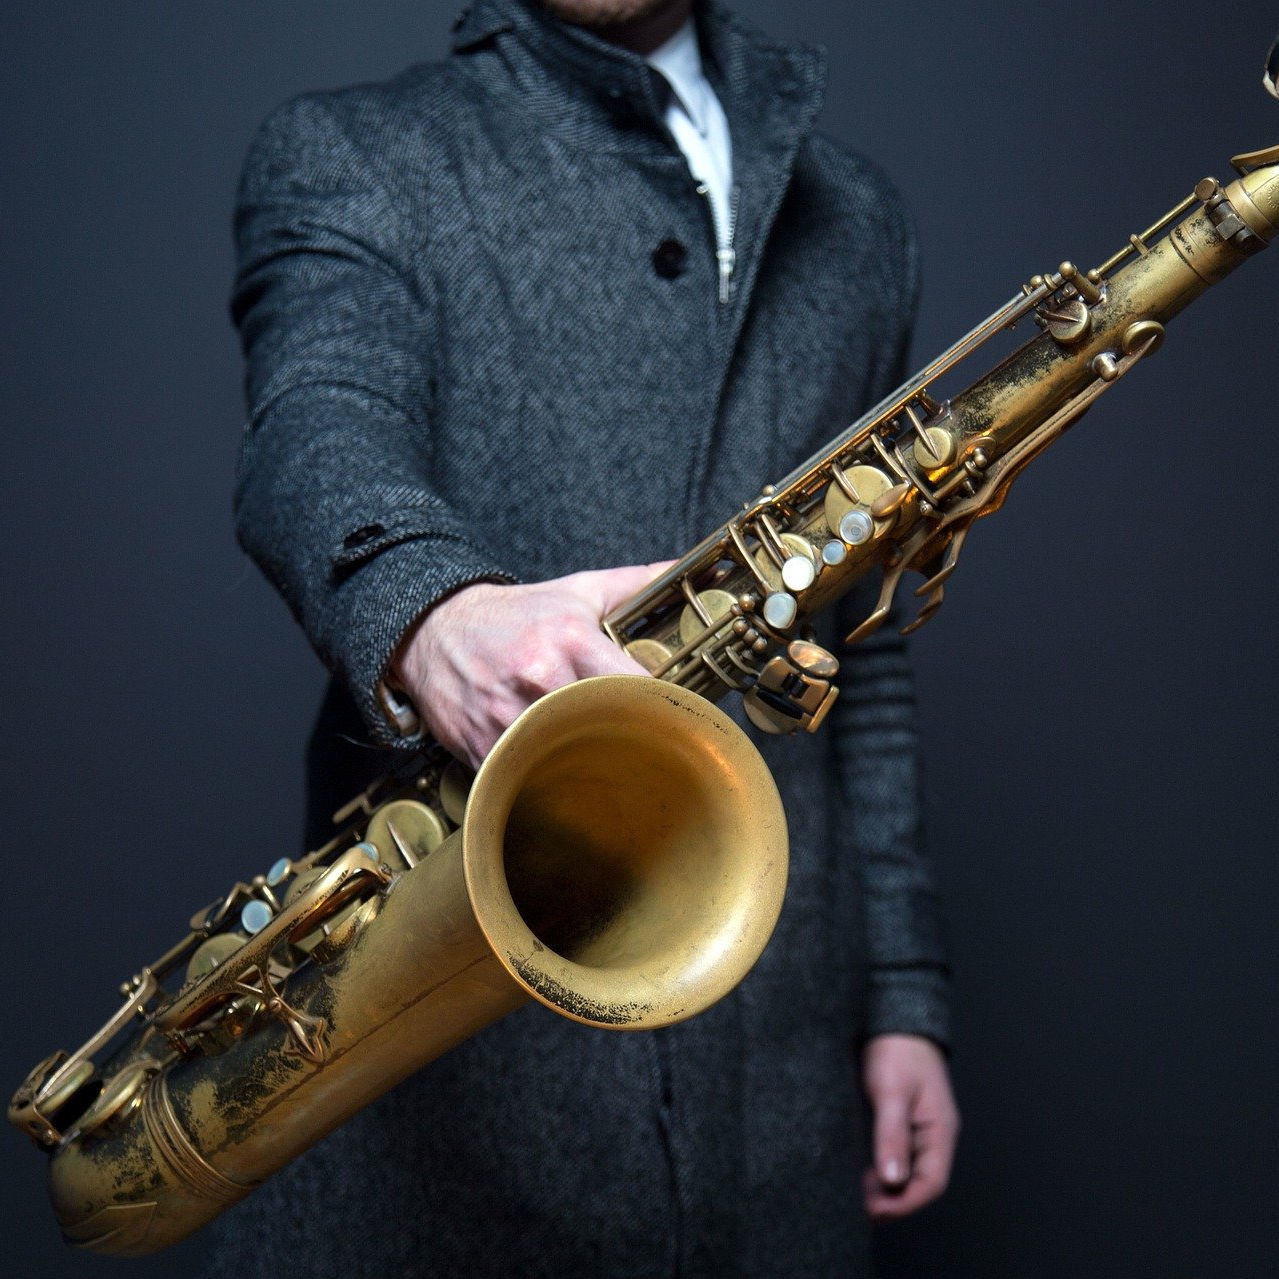 Saxophone held by player